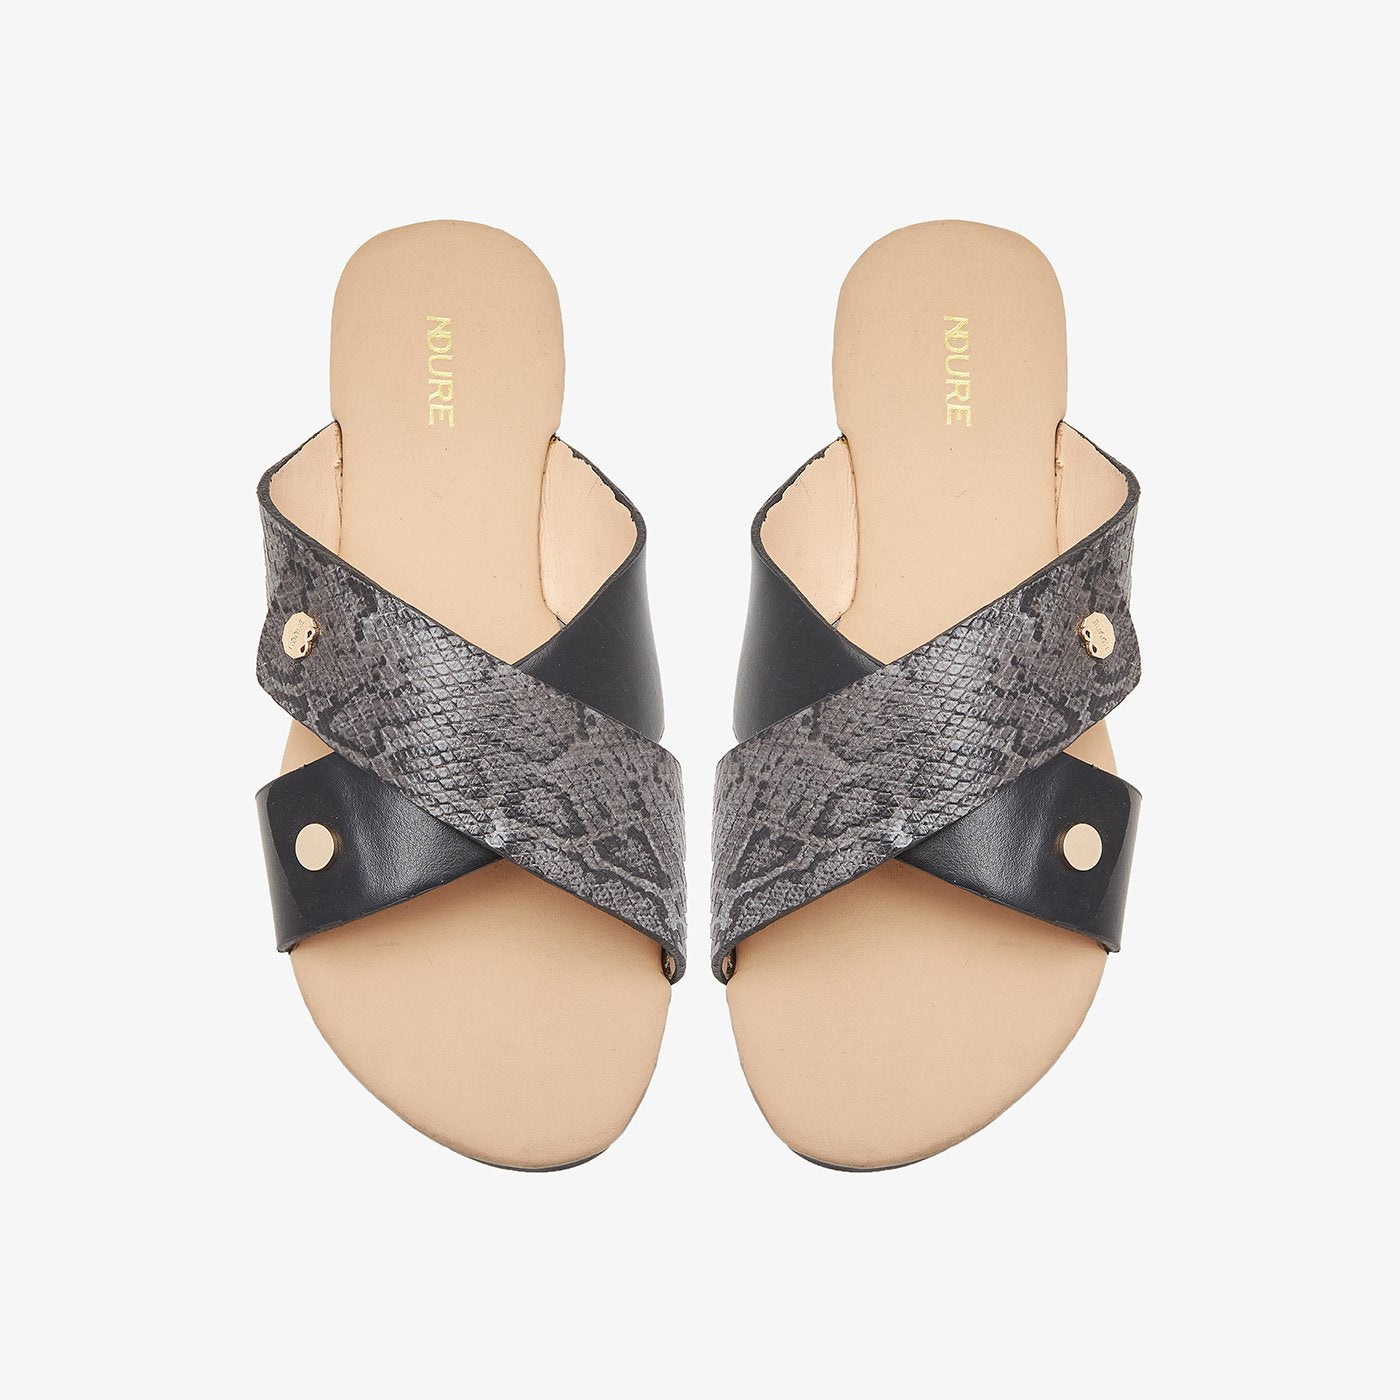 Cross Strap Chappals for Women